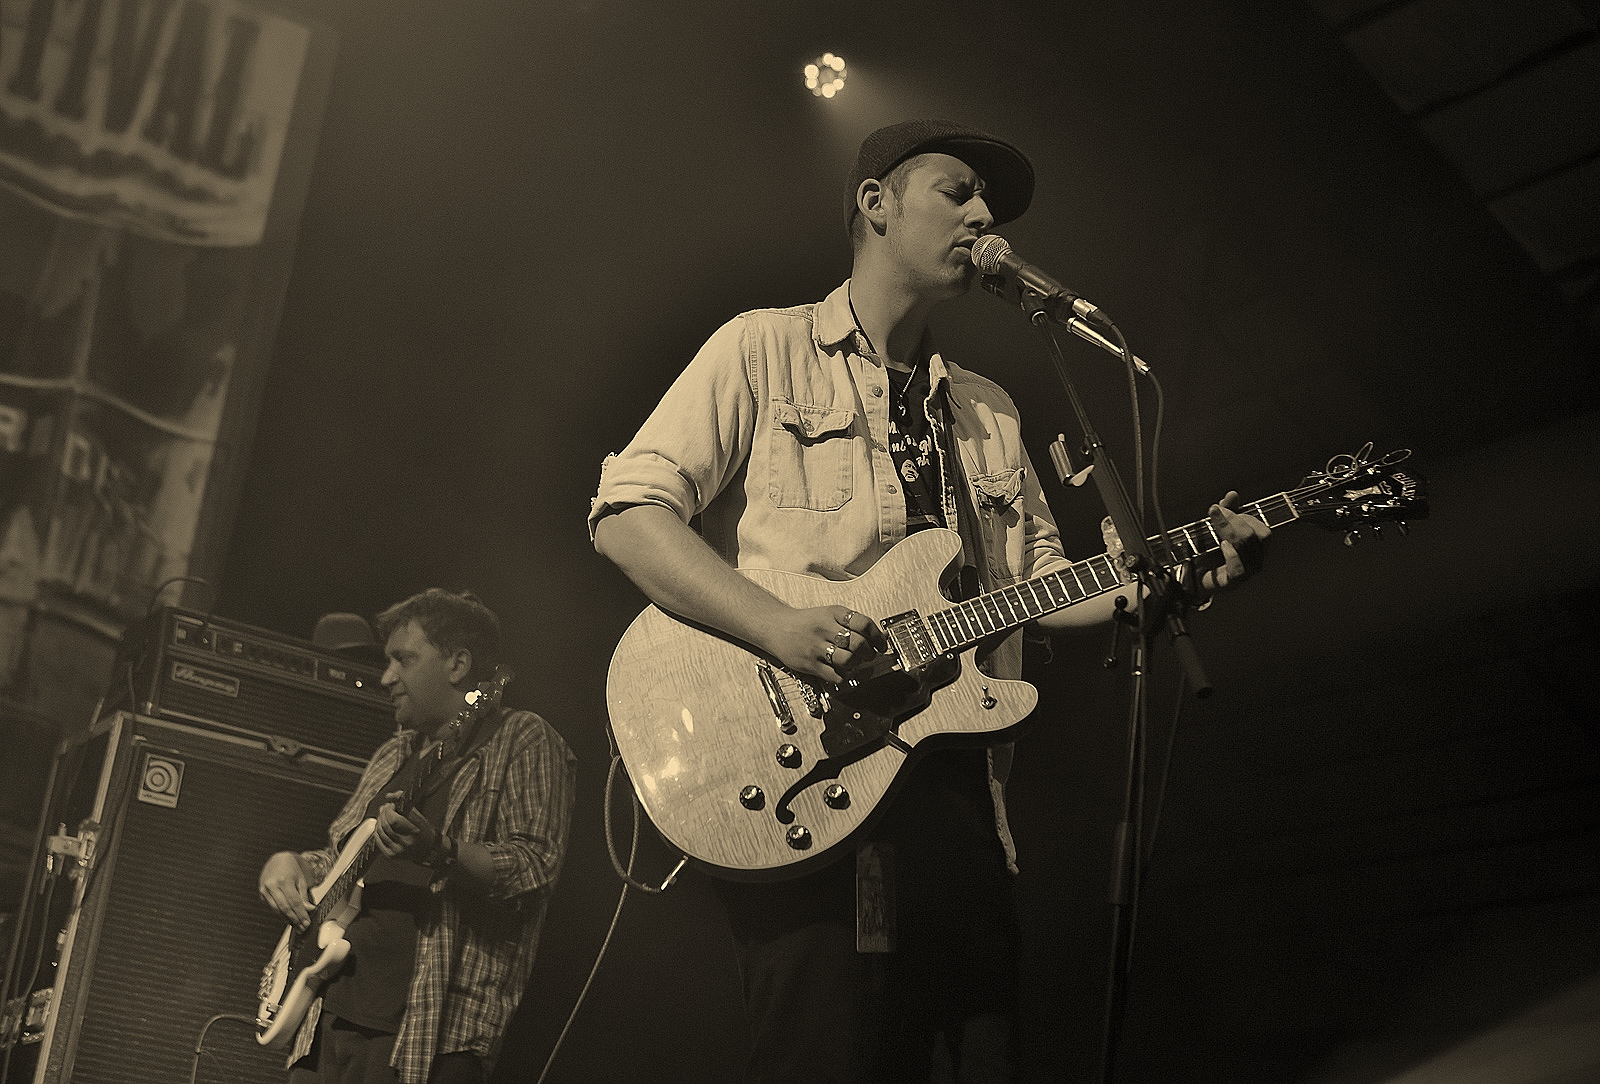 A.J. Fullerton featuring Stud Ford and Nic Clark_BB_BLB21213 - Copy.jpg